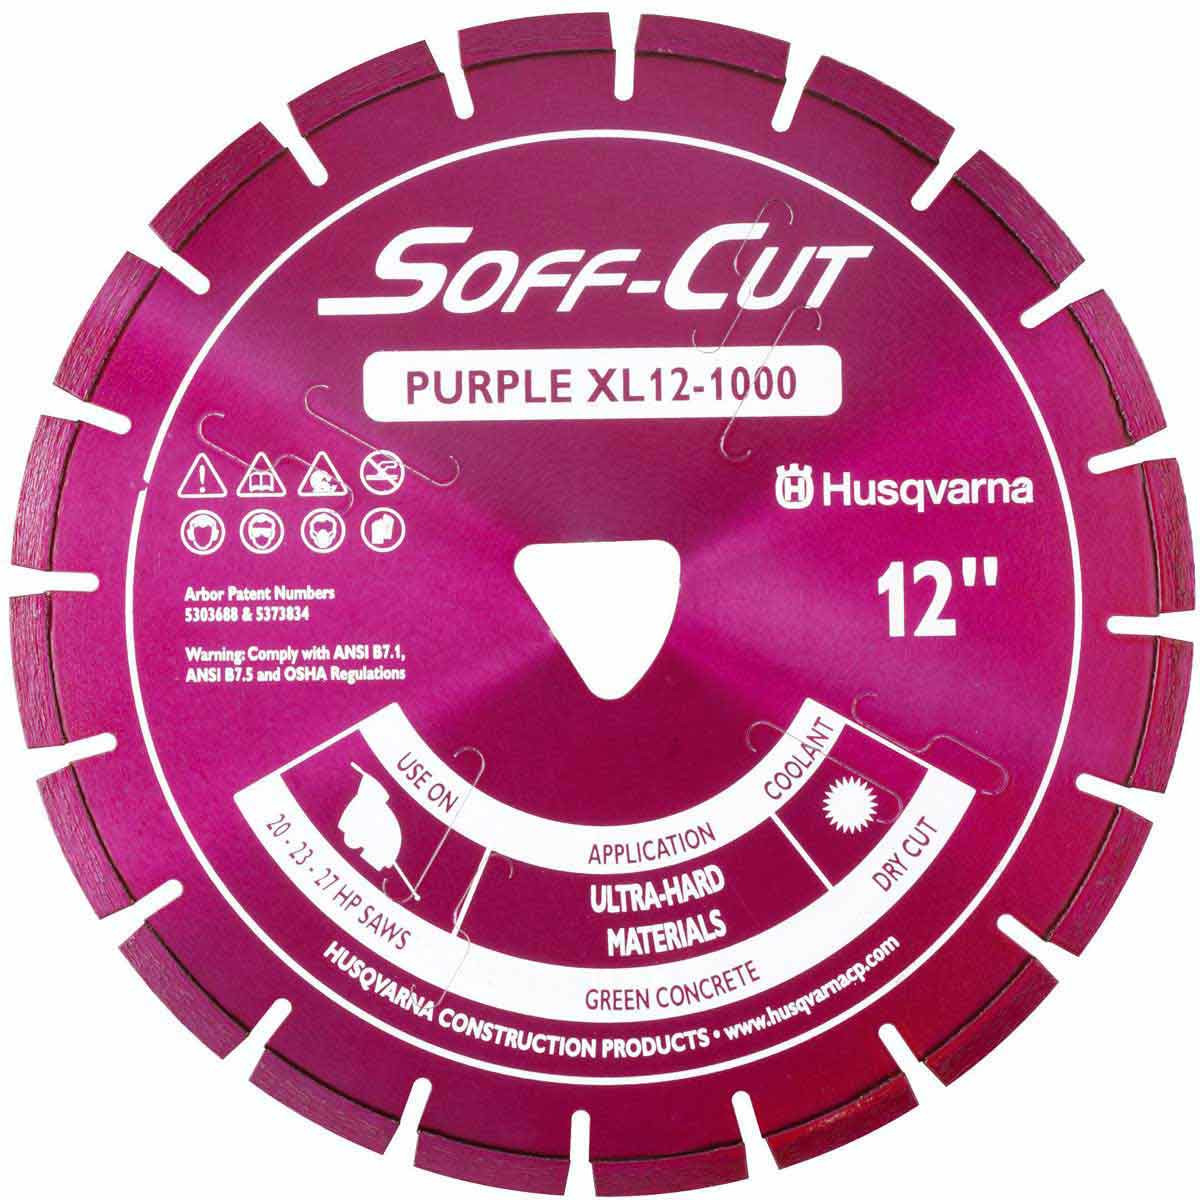 Husqvarna Soff-Cut Excel 1000 Purple Ultra Early Saw Blade